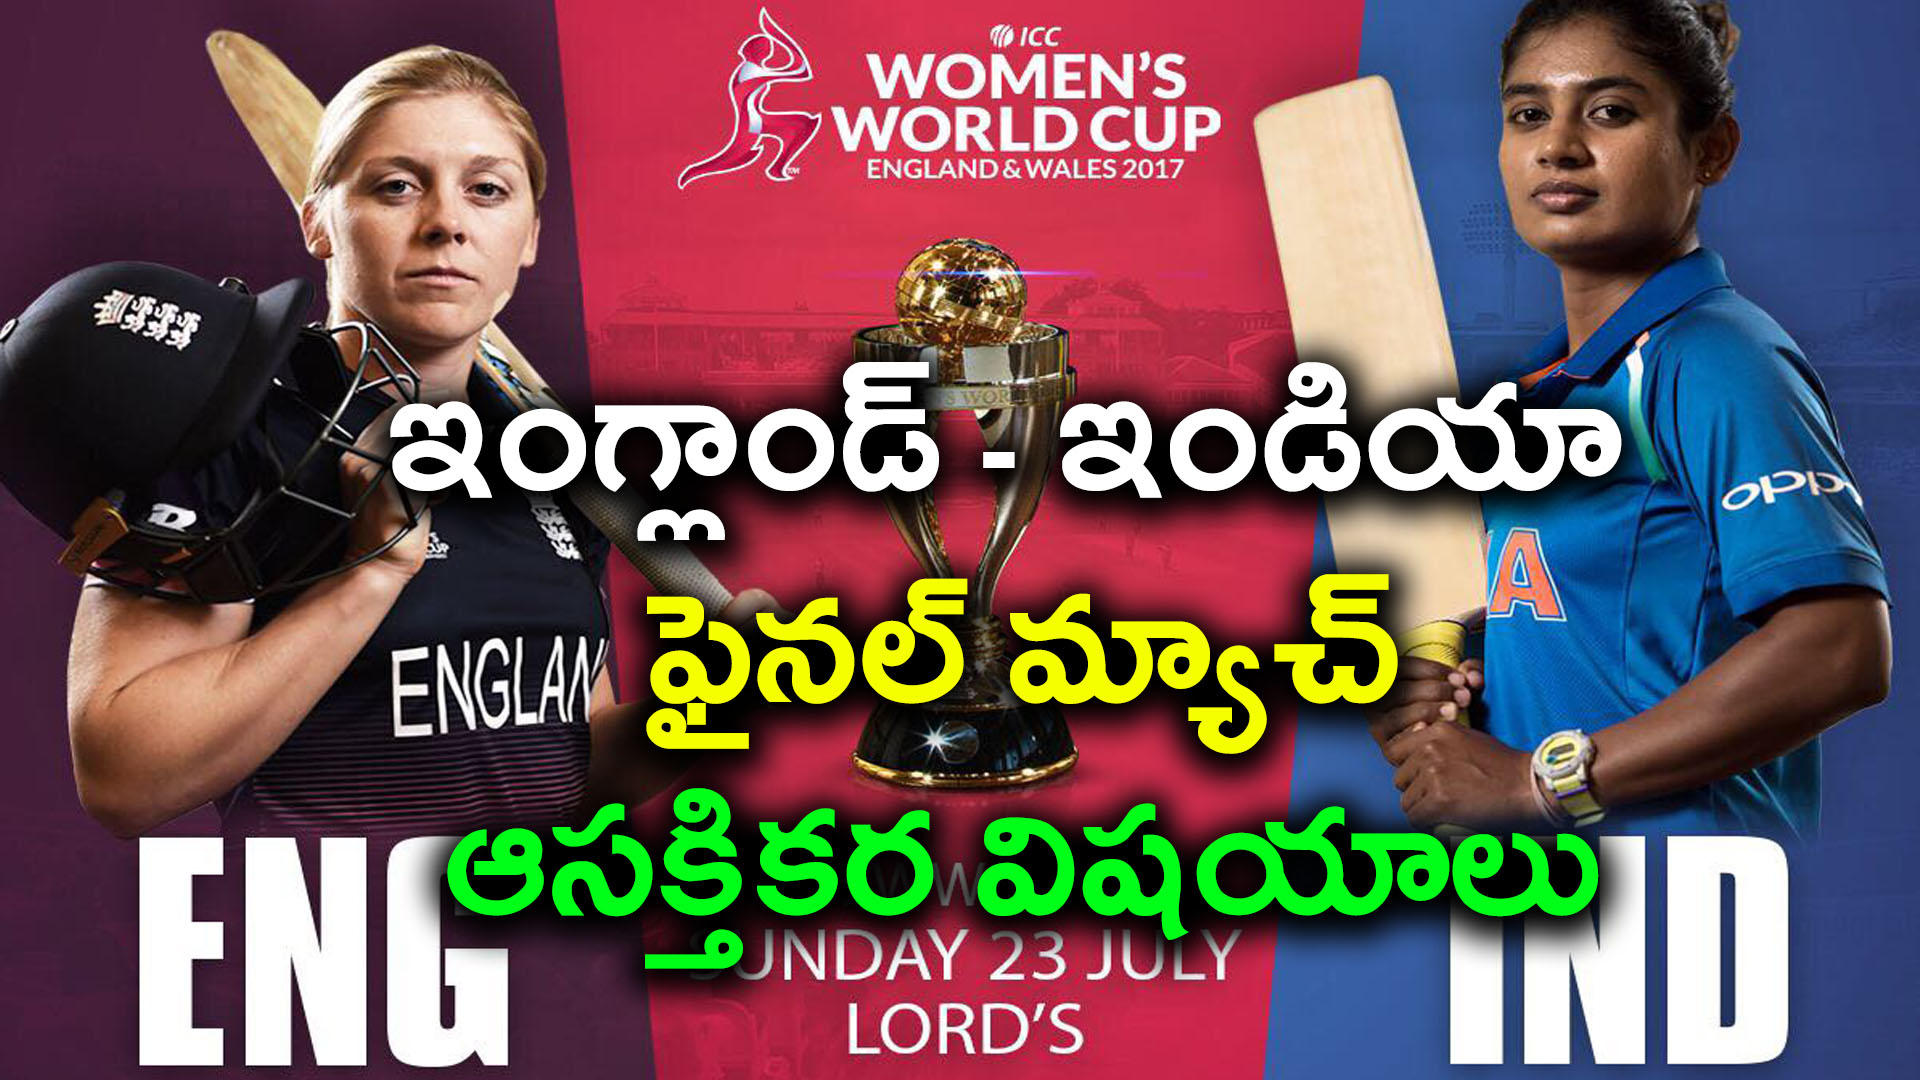 India vs England ICC Women's World Cup 2017 Final 10 Facts